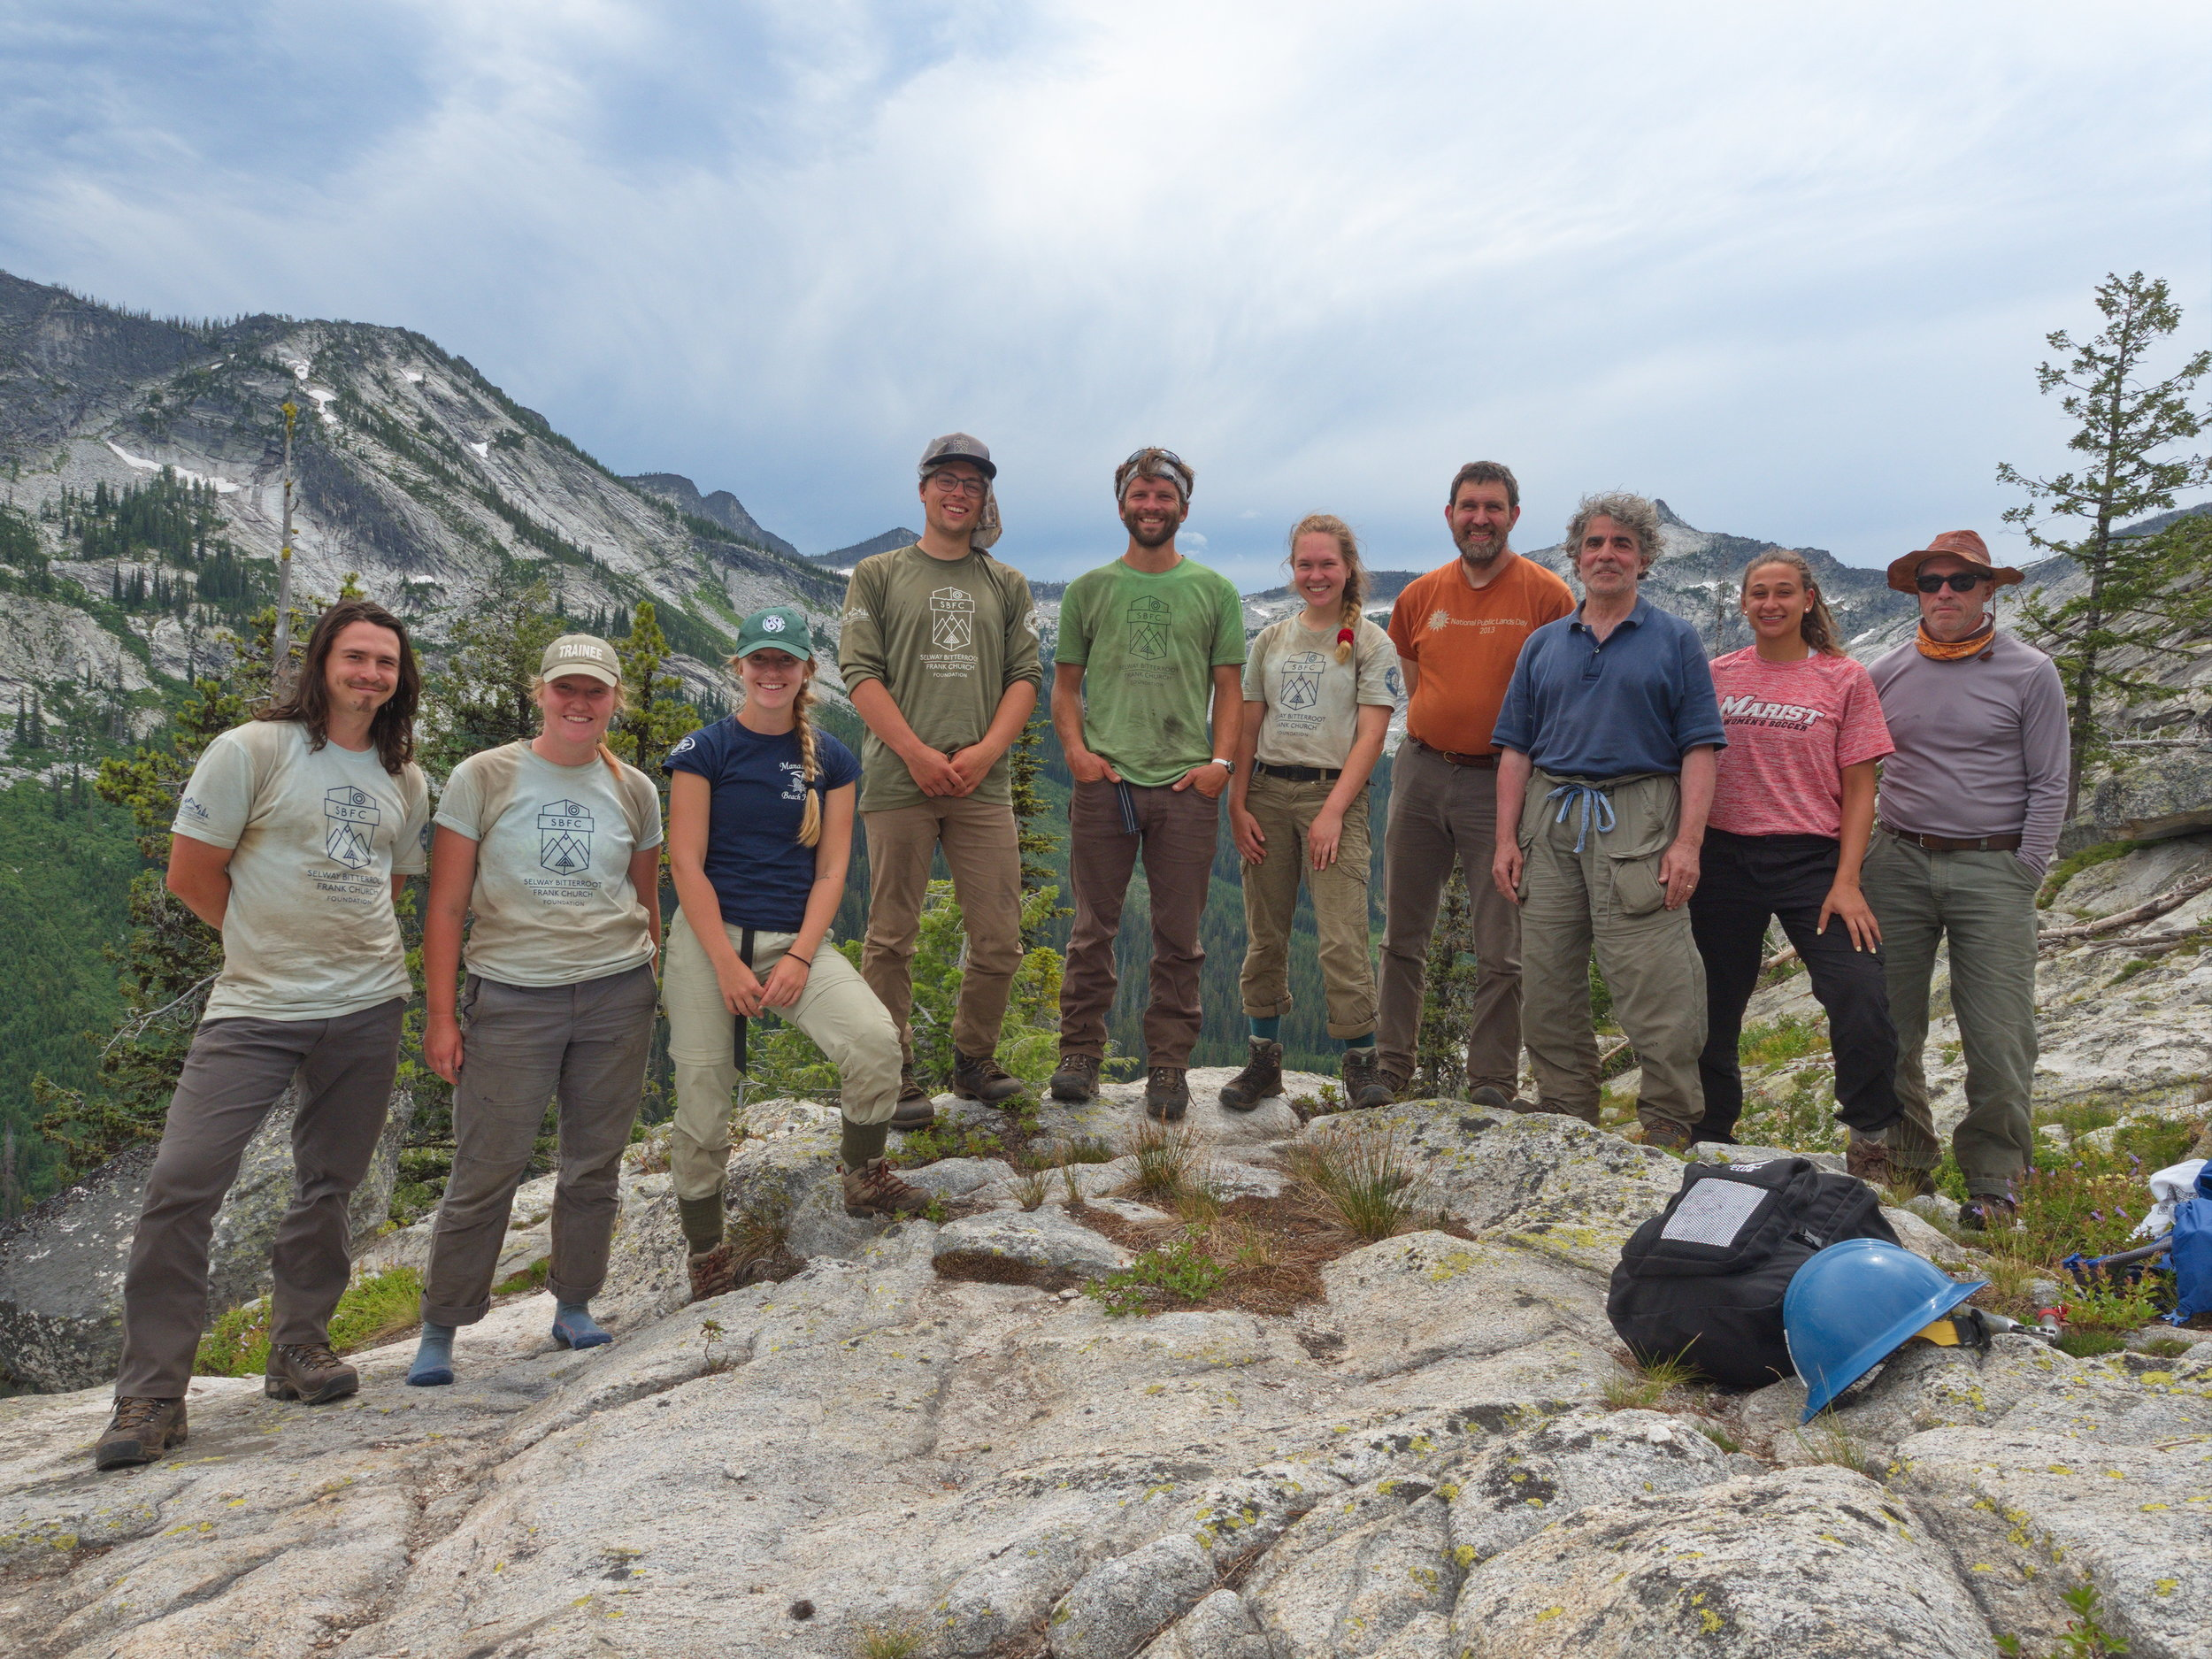 What a crew!  Staff, WR Interns, and Sierra Club Volunteers.